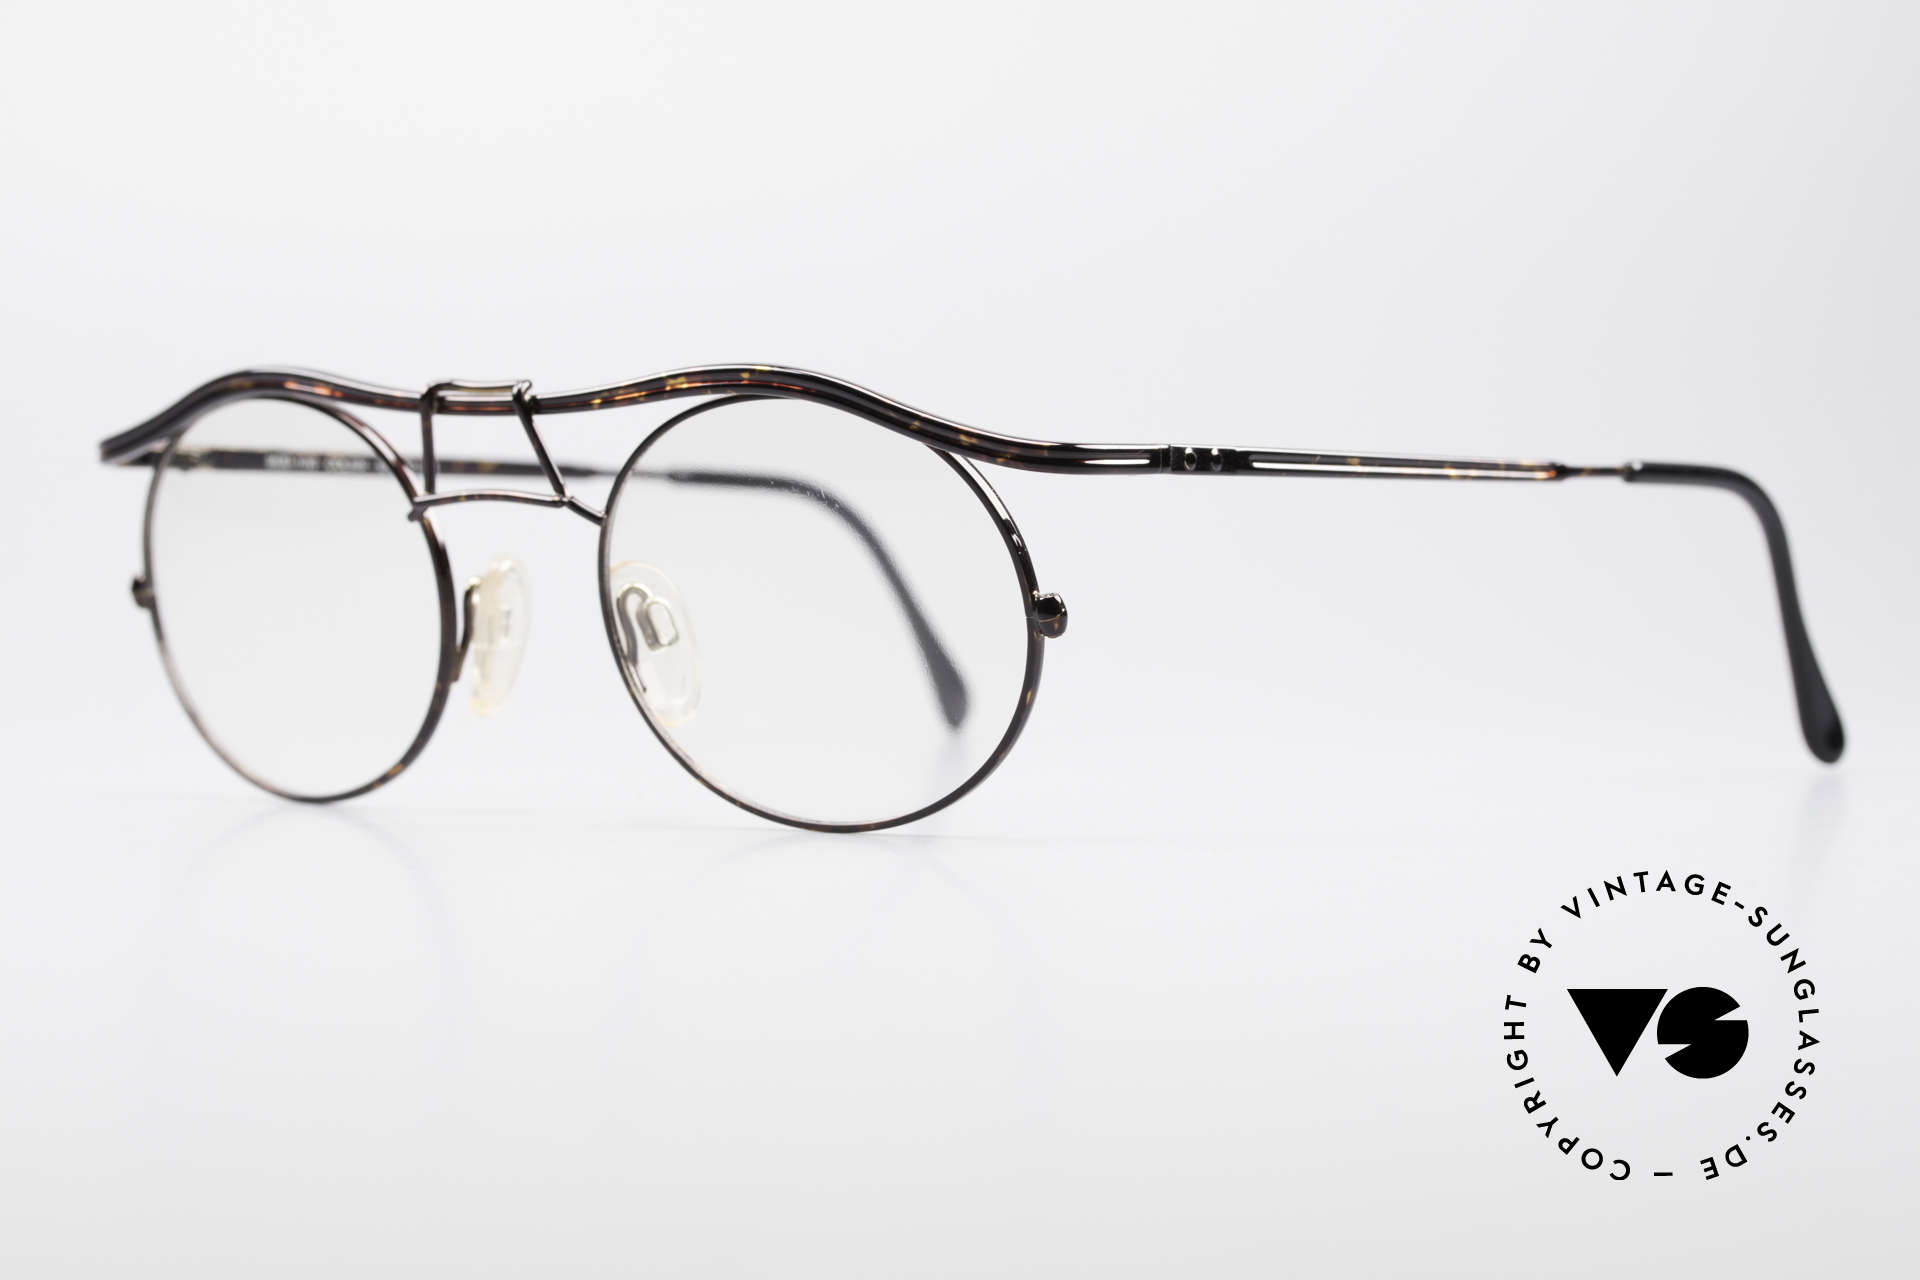 Cazal 1110 - Point 2 90's Industrial Eyeglasses, tangible superior crafting quality (made in GERMANY), Made for Men